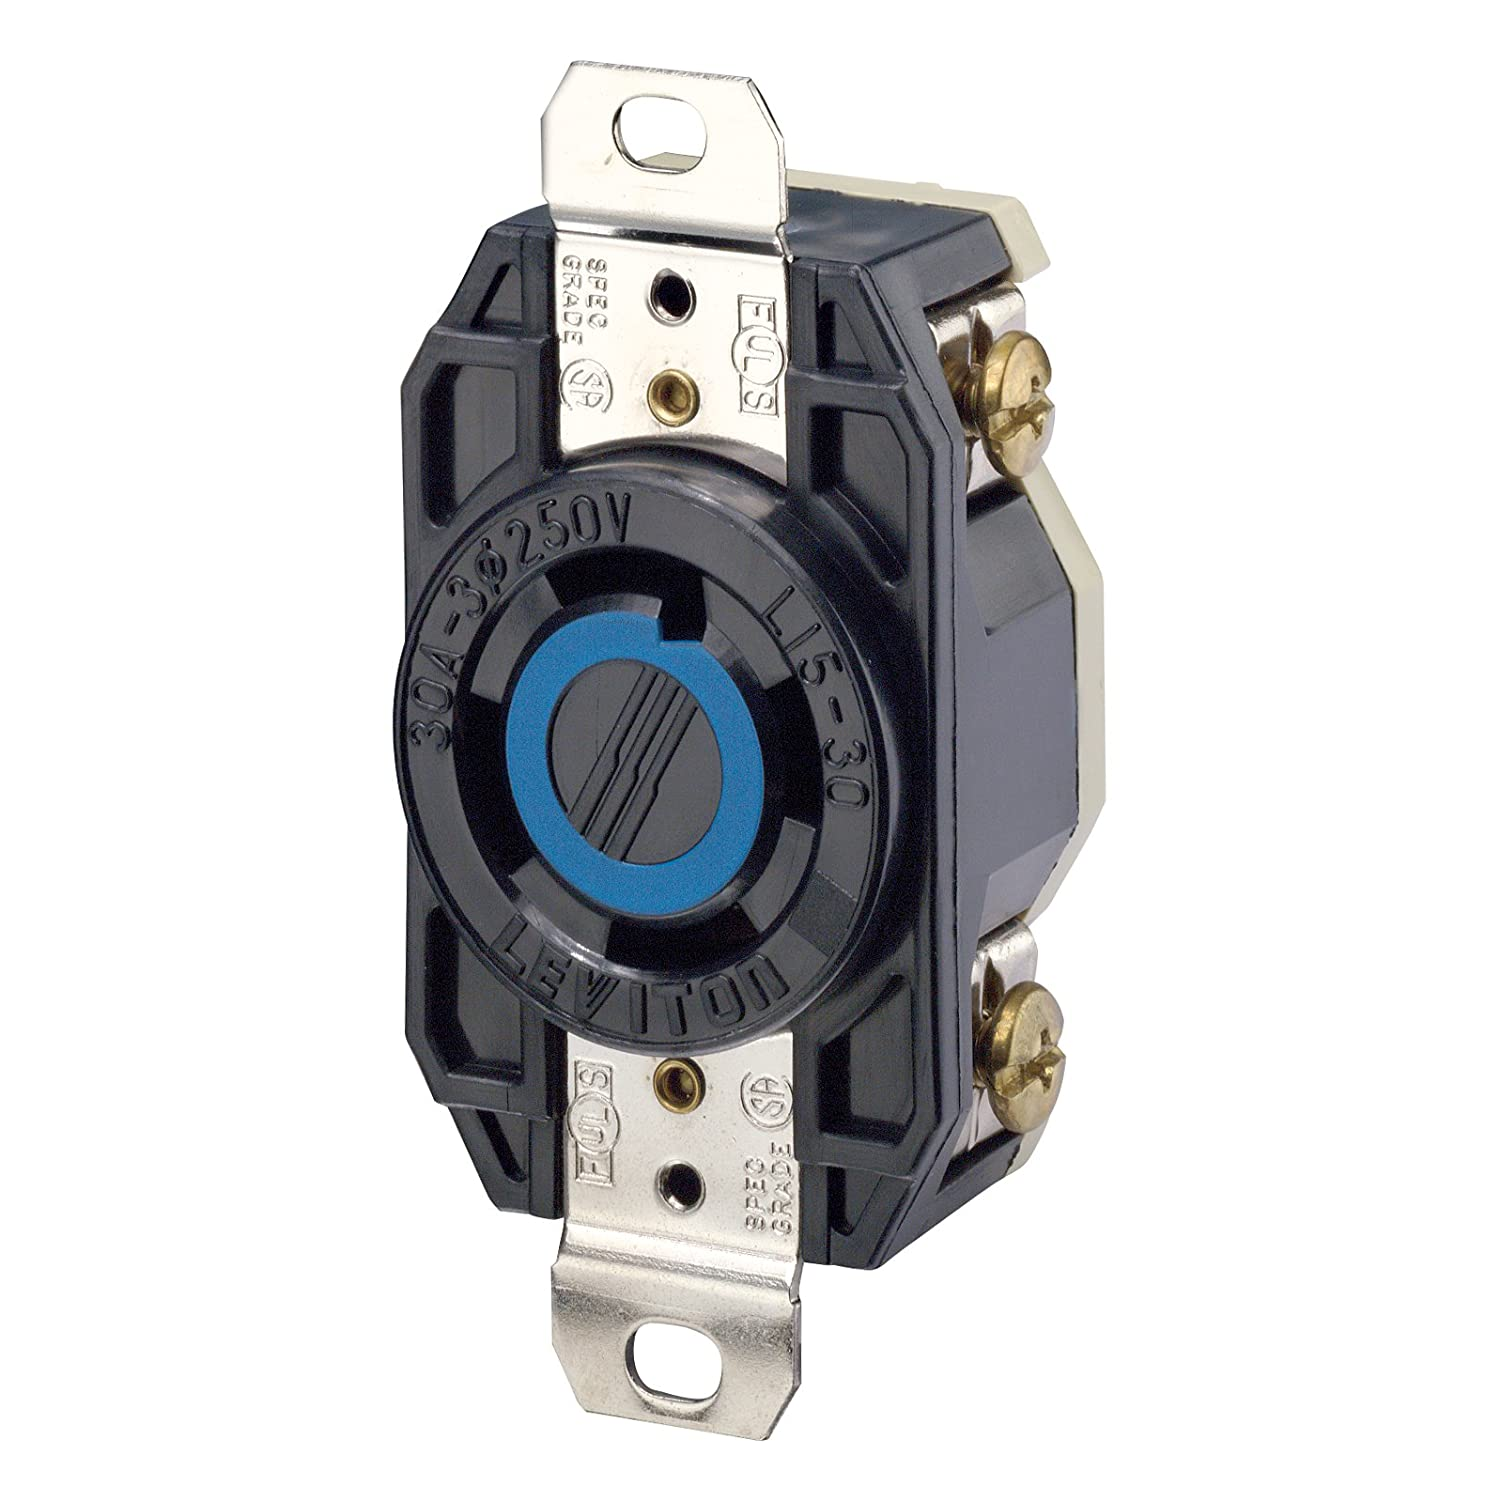 71QmADEo8EL._SL1500_ leviton 2720 30 amp, 250 volt 3 phase, flush mounting locking  at reclaimingppi.co